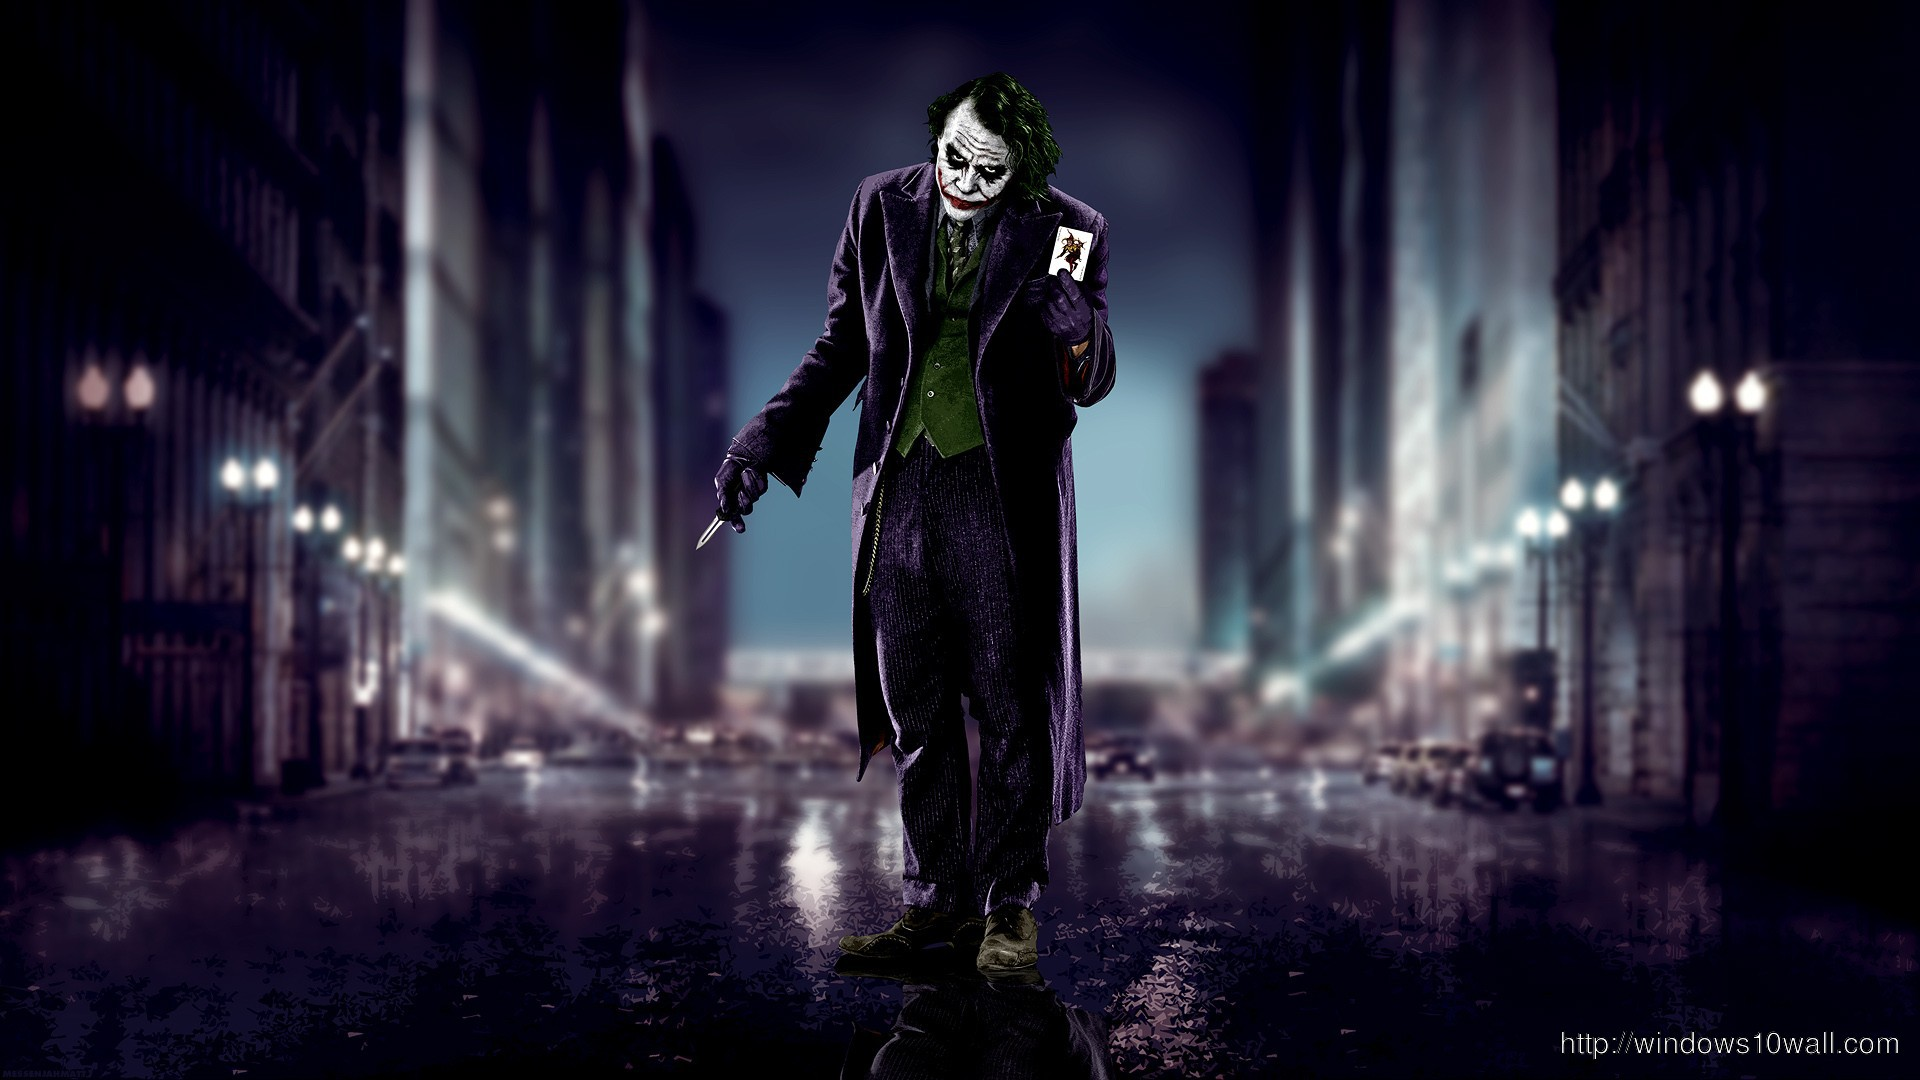 Inspirational Sports Quotes Wallpaper For Iphone Joker In The Dark Knight Rises Movie Wallpaper Windows